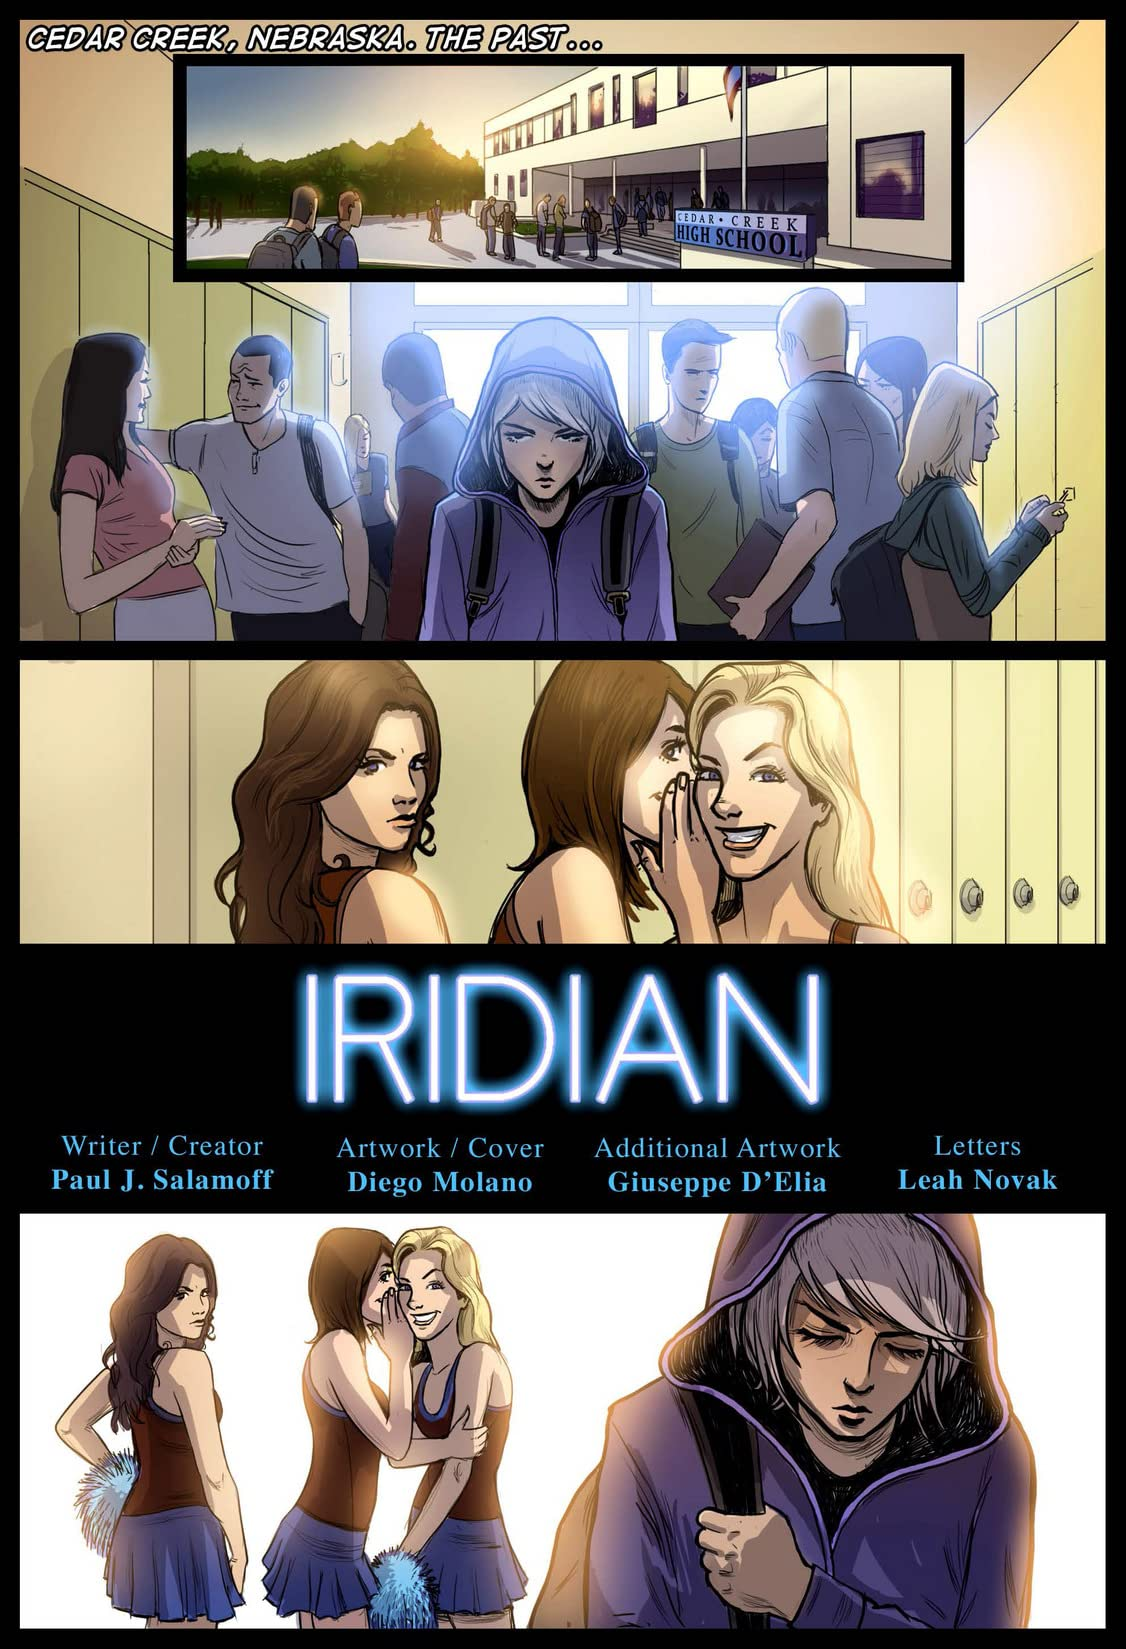 Tales of Discord #2: Iridian